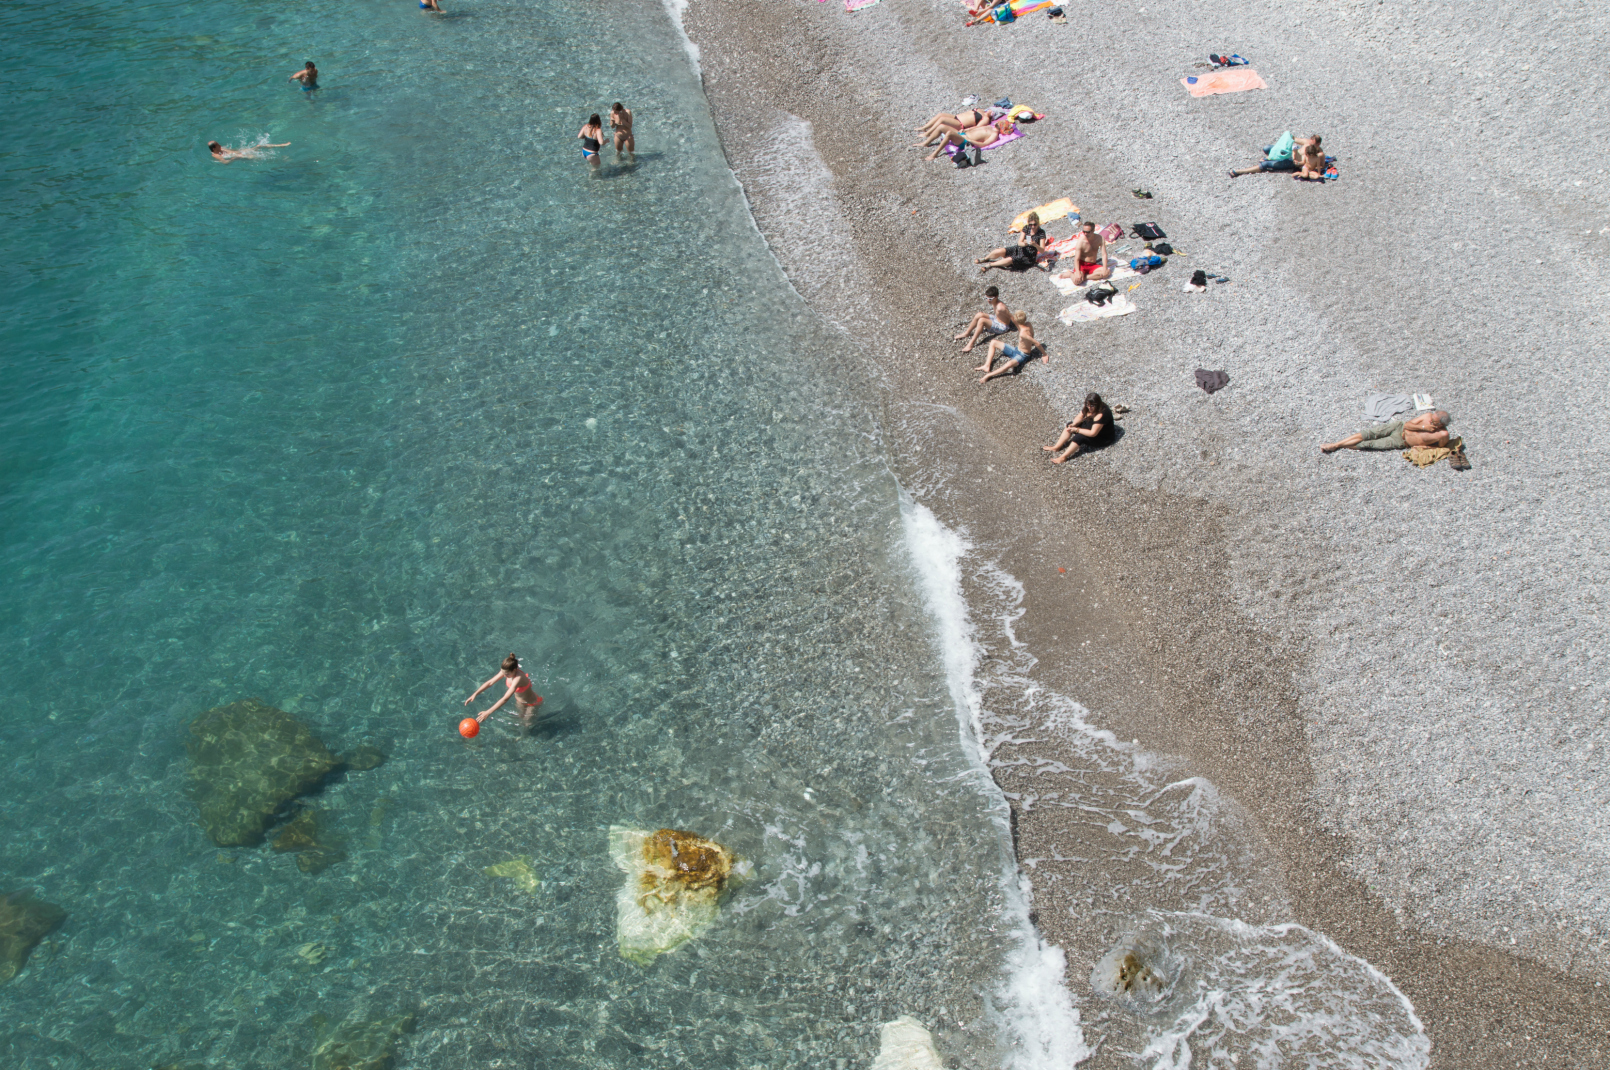 April Beach in Amalfi - Spring on the Amalfi Coast